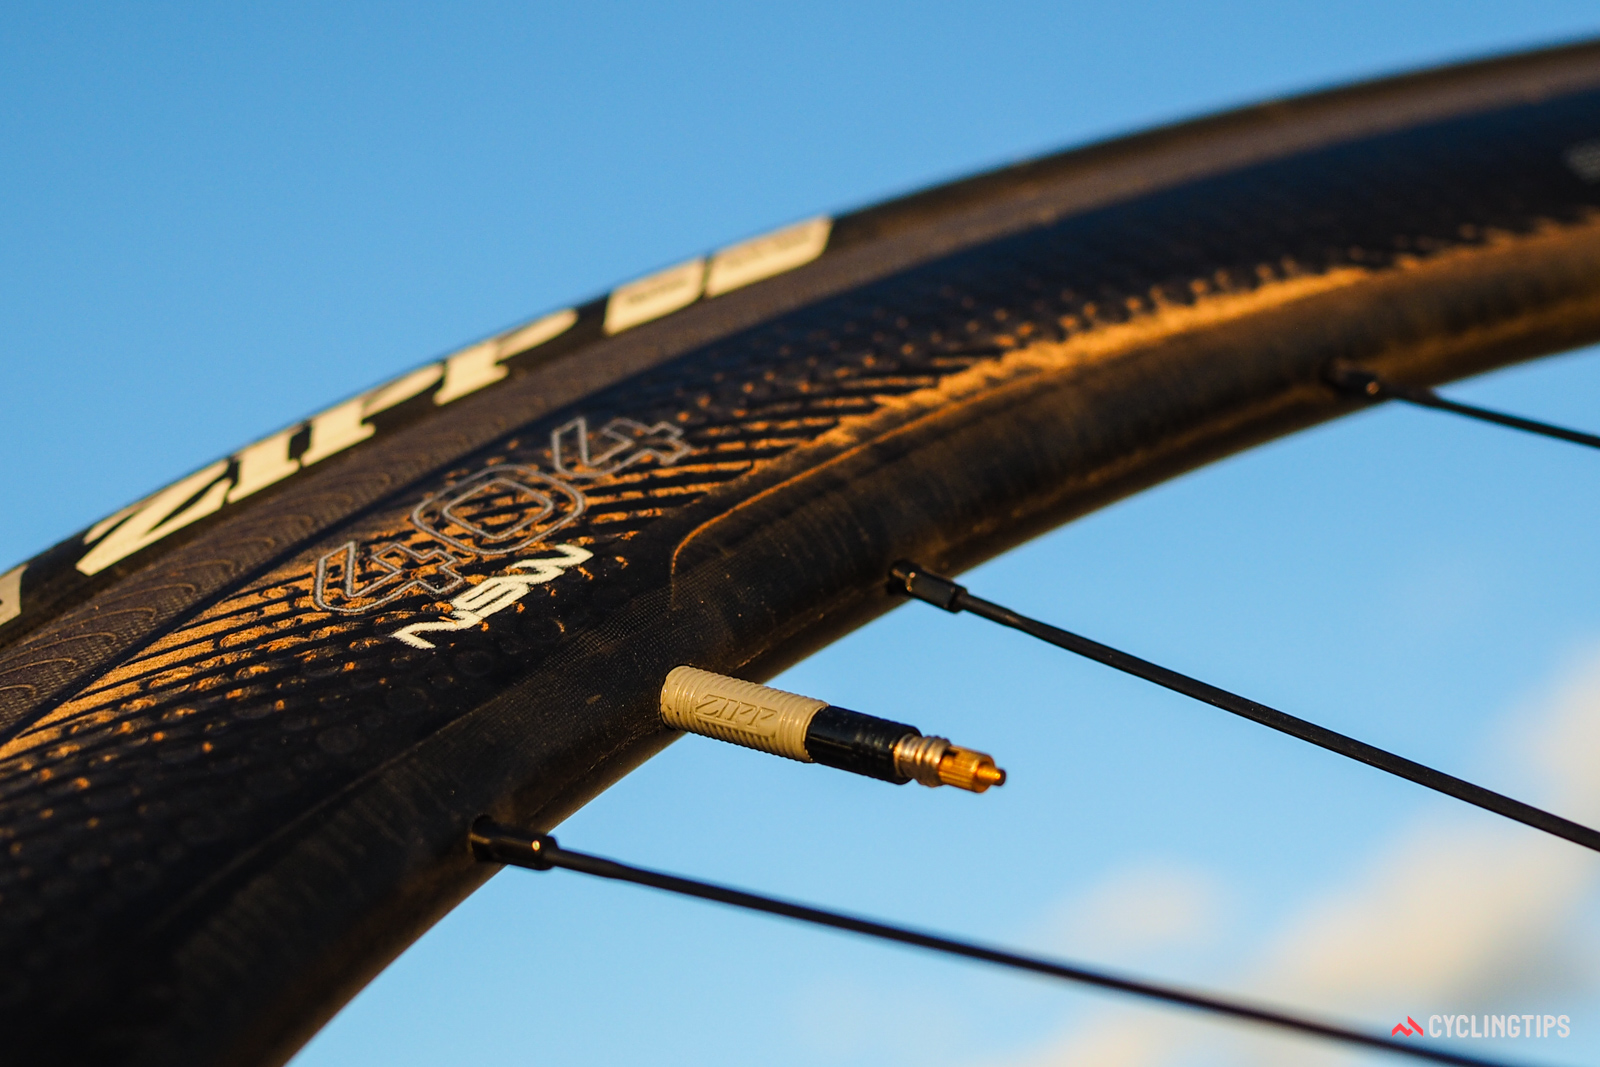 Each set of Zipp 404 NSW wheels comes with special brake pads, titanium skewers, and valve extenders made for Zipp by Silca. The silicone rubber coating seems like a minor detail, but it keeps the valve from rattling without the need for any supplemental tape.